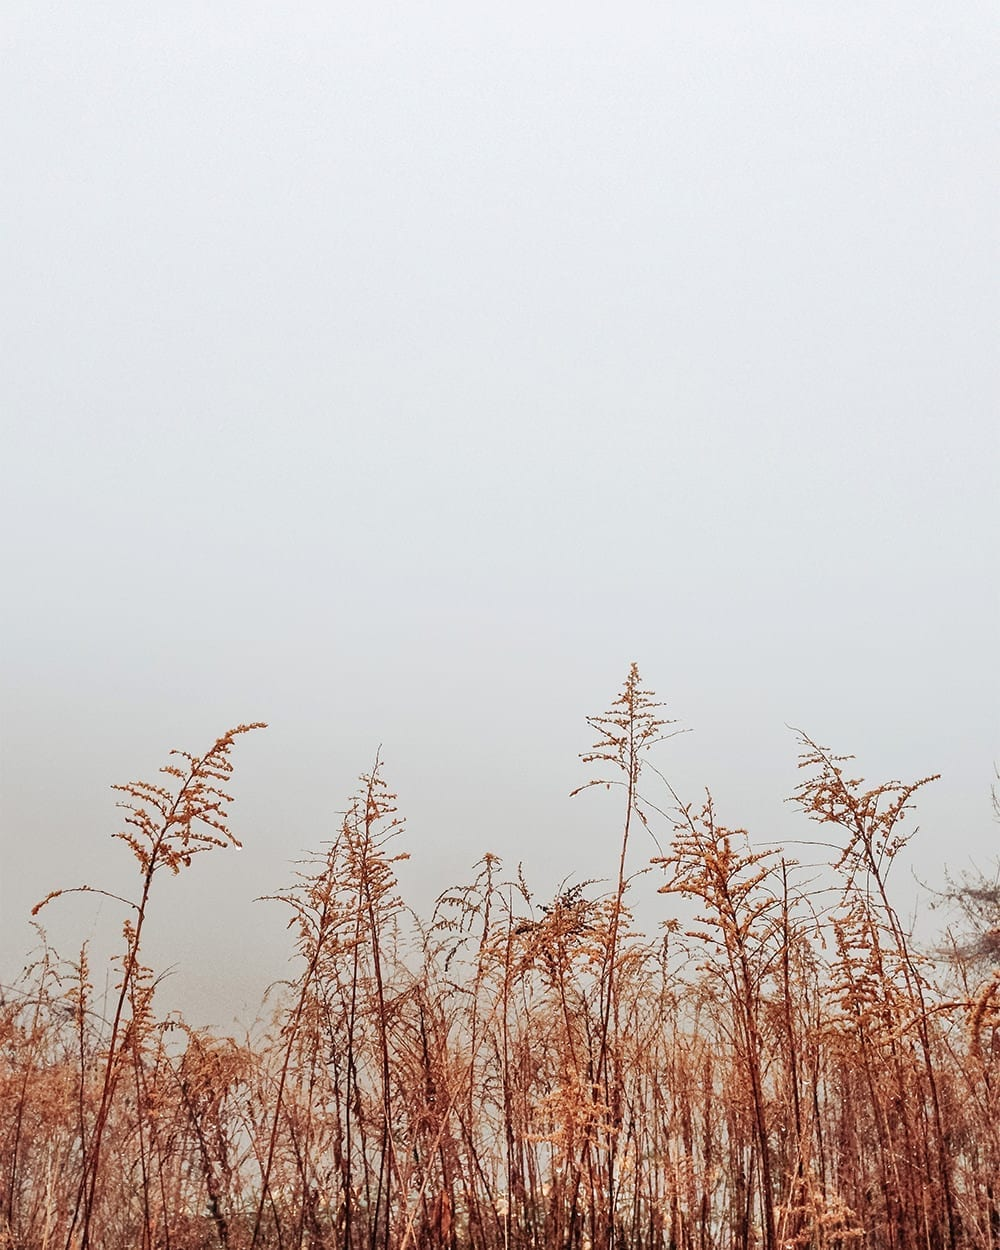 minimal style winter image of orange reed taken with fog and rain